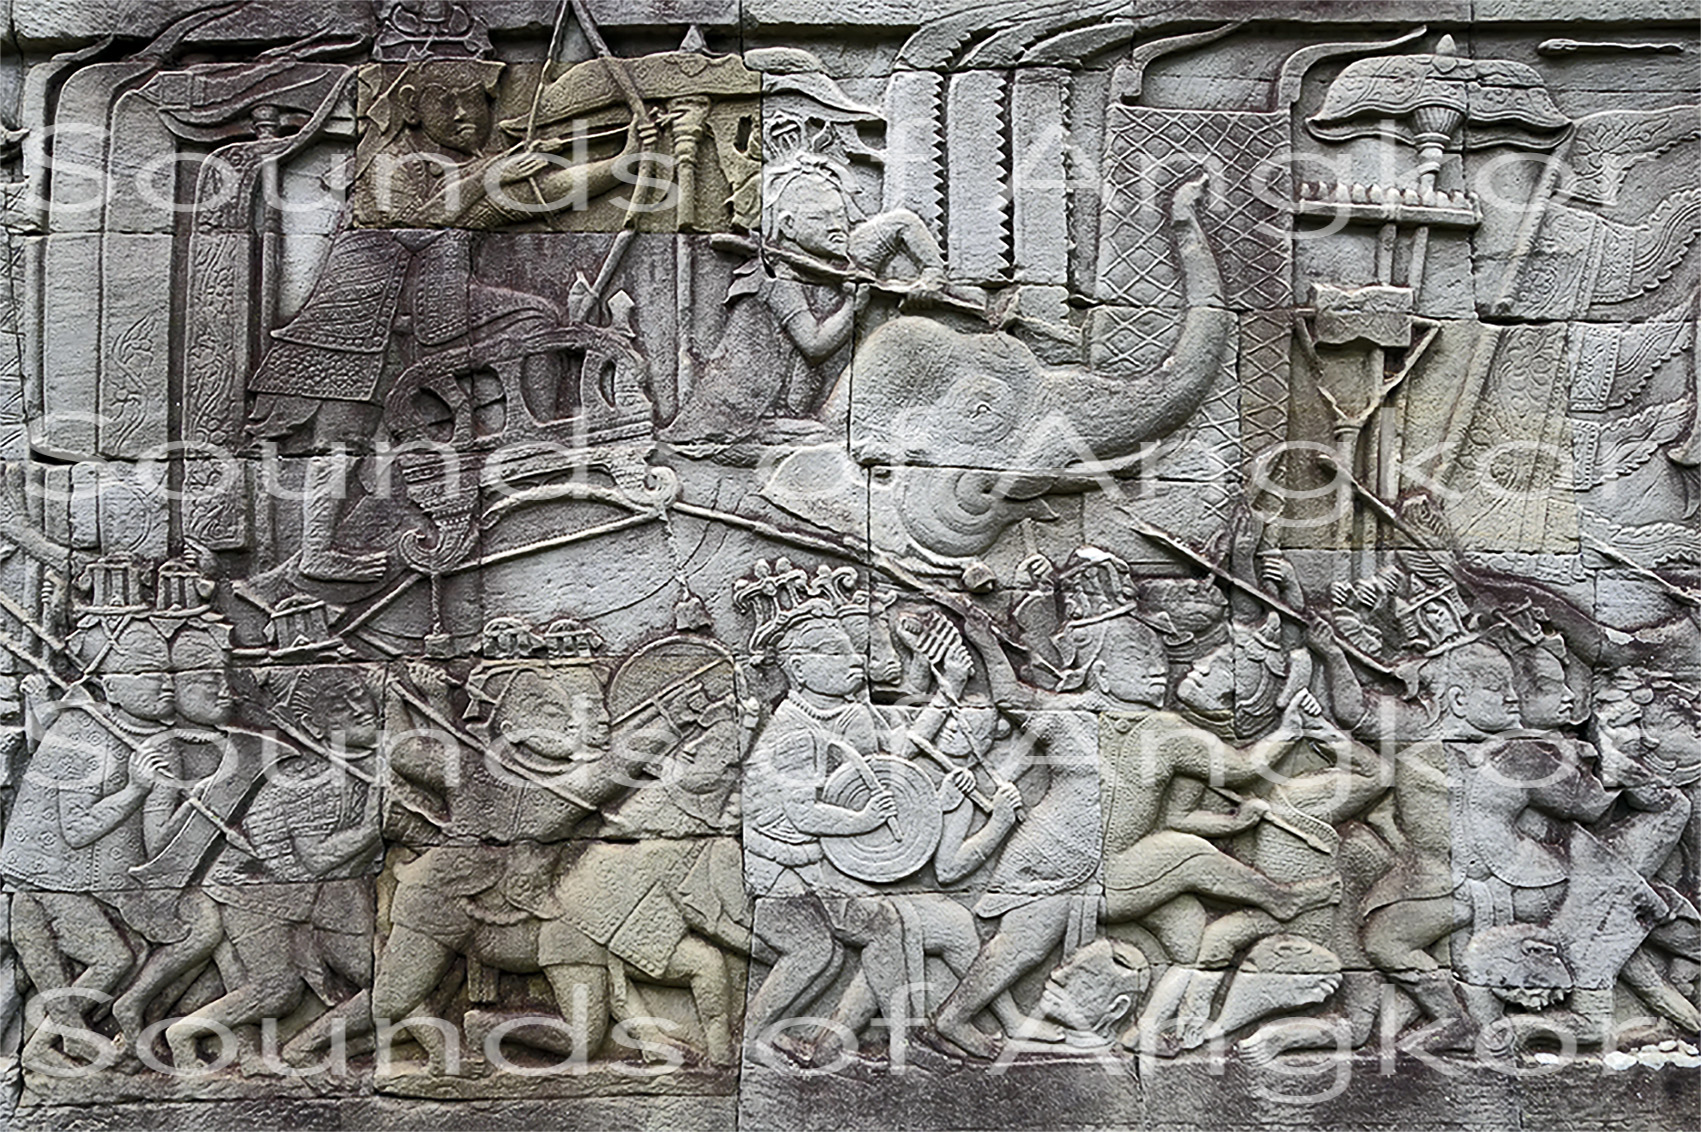 Chinese soldiers and musicians. Bayon, east outer gallery, north wing. July 2021.